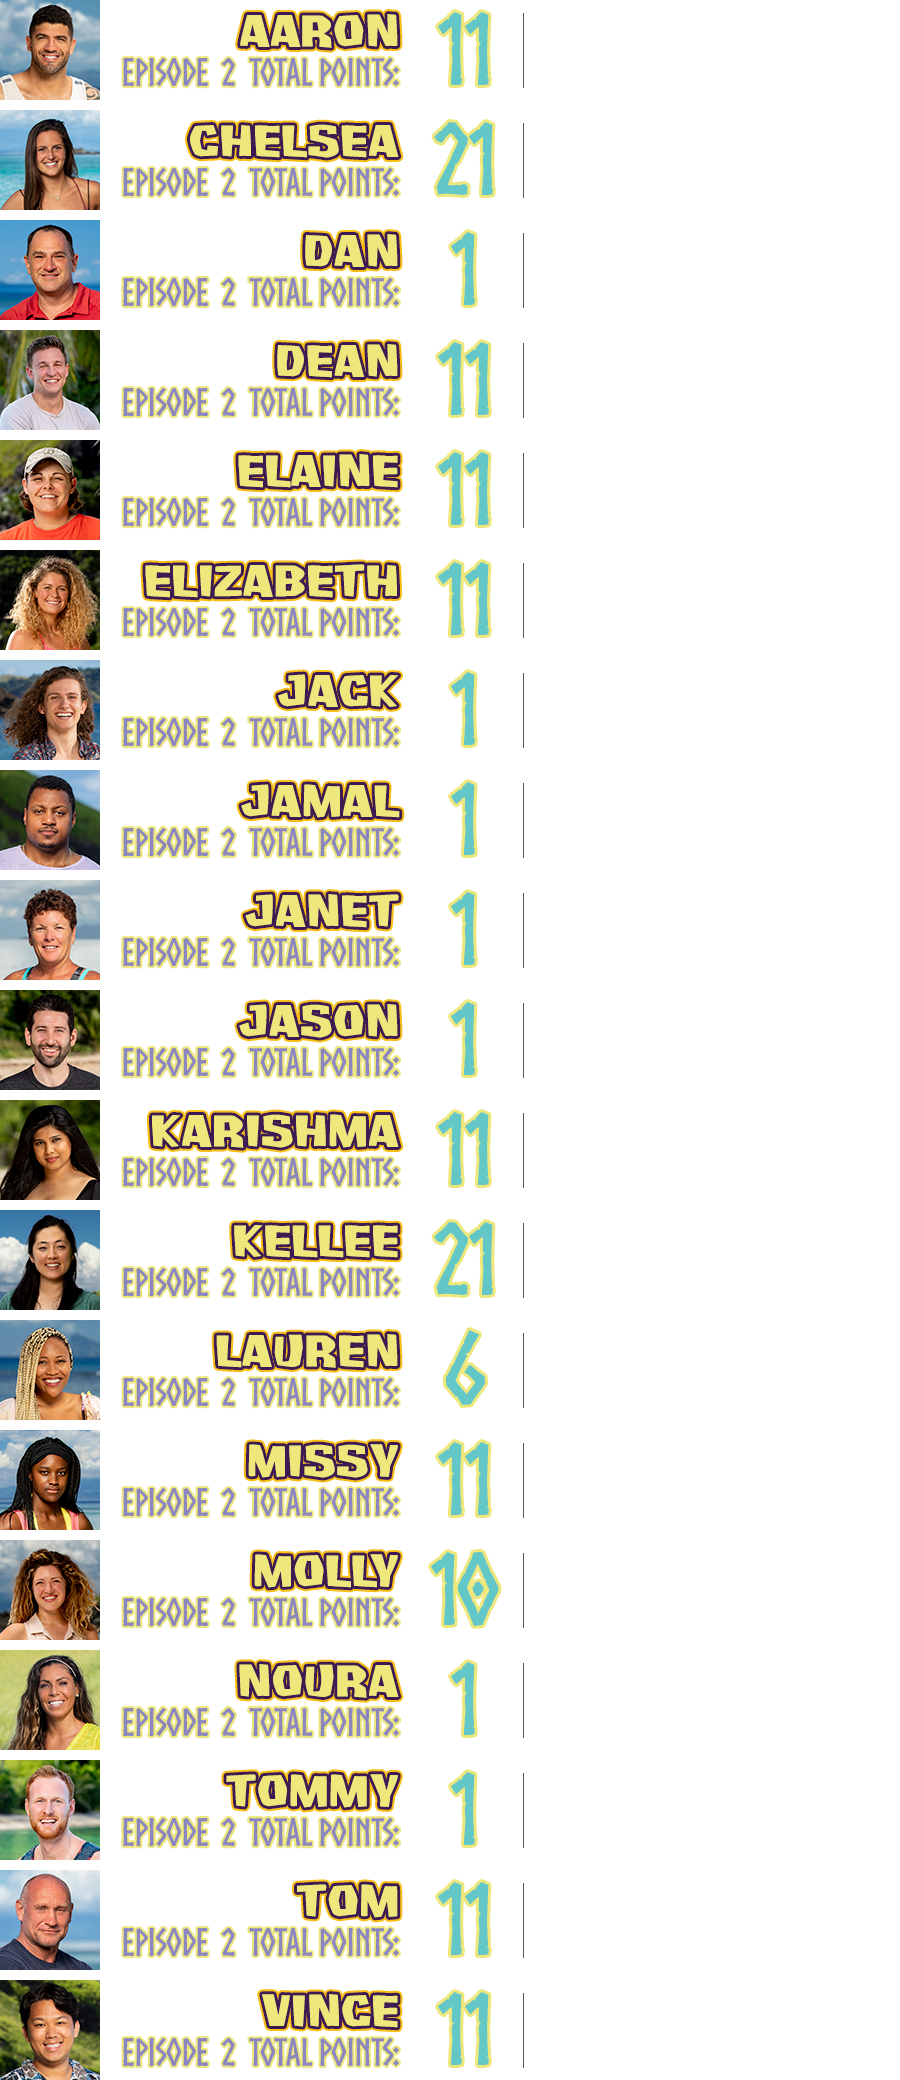 Aaron total points: 11, points breakdown: won group reward challenge +5, won group immunity challenge +5, survived the week +1; Chelsea total points: 21, points breakdown: won group reward challenge +5, won group immunity challenge +5, found hidden immunity idol +10, survived the week +1; Dan total points: 1, points breakdown: survived the week +1; Dean total points: 11, points breakdown: won group reward challenge +5, won group immunity challenge +5, survived the week +1; Elaine total points: 11, points breakdown: won group reward challenge +5, won group immunity challenge +5, survived the week +1; Elizabeth total points: 11, points breakdown: won group reward challenge +5, won group immunity challenge +5, survived the week +1; Jack total points: 1, points breakdown: survived the week +1; Jamal total points: 1, points breakdown: survived the week +1; Janet total points: 1, points breakdown: survived the week +1; Jason total points: 1, points breakdown: survived the week +1; Karishma total points: 11, points breakdown: won group reward challenge +5, won group immunity challenge +5, survived the week +1; Kellee total points: 11, points breakdown: went to Island of the Idols +5, won Island of the Idols challenge +10, cried on camera +5, survived the week +1; Lauren total points: 6, points breakdown: cried on camera +5, survived the week +1; Missy total points: 11, points breakdown: won group reward challenge +5, won group immunity challenge +5, survived the week +1; Molly total points: 10, points breakdown: torch snuffed due to blindside +10; Noura total points: 1, points breakdown: survived the week +1; Tommy total points: 1, points breakdown: survived the week +1; Tom total points: 11, points breakdown: won group reward challenge +5, won group immunity challenge +5, survived the week +1; Vince total points: 11, points breakdown: won group reward challenge +5, won group immunity challenge +5, survived the week +1